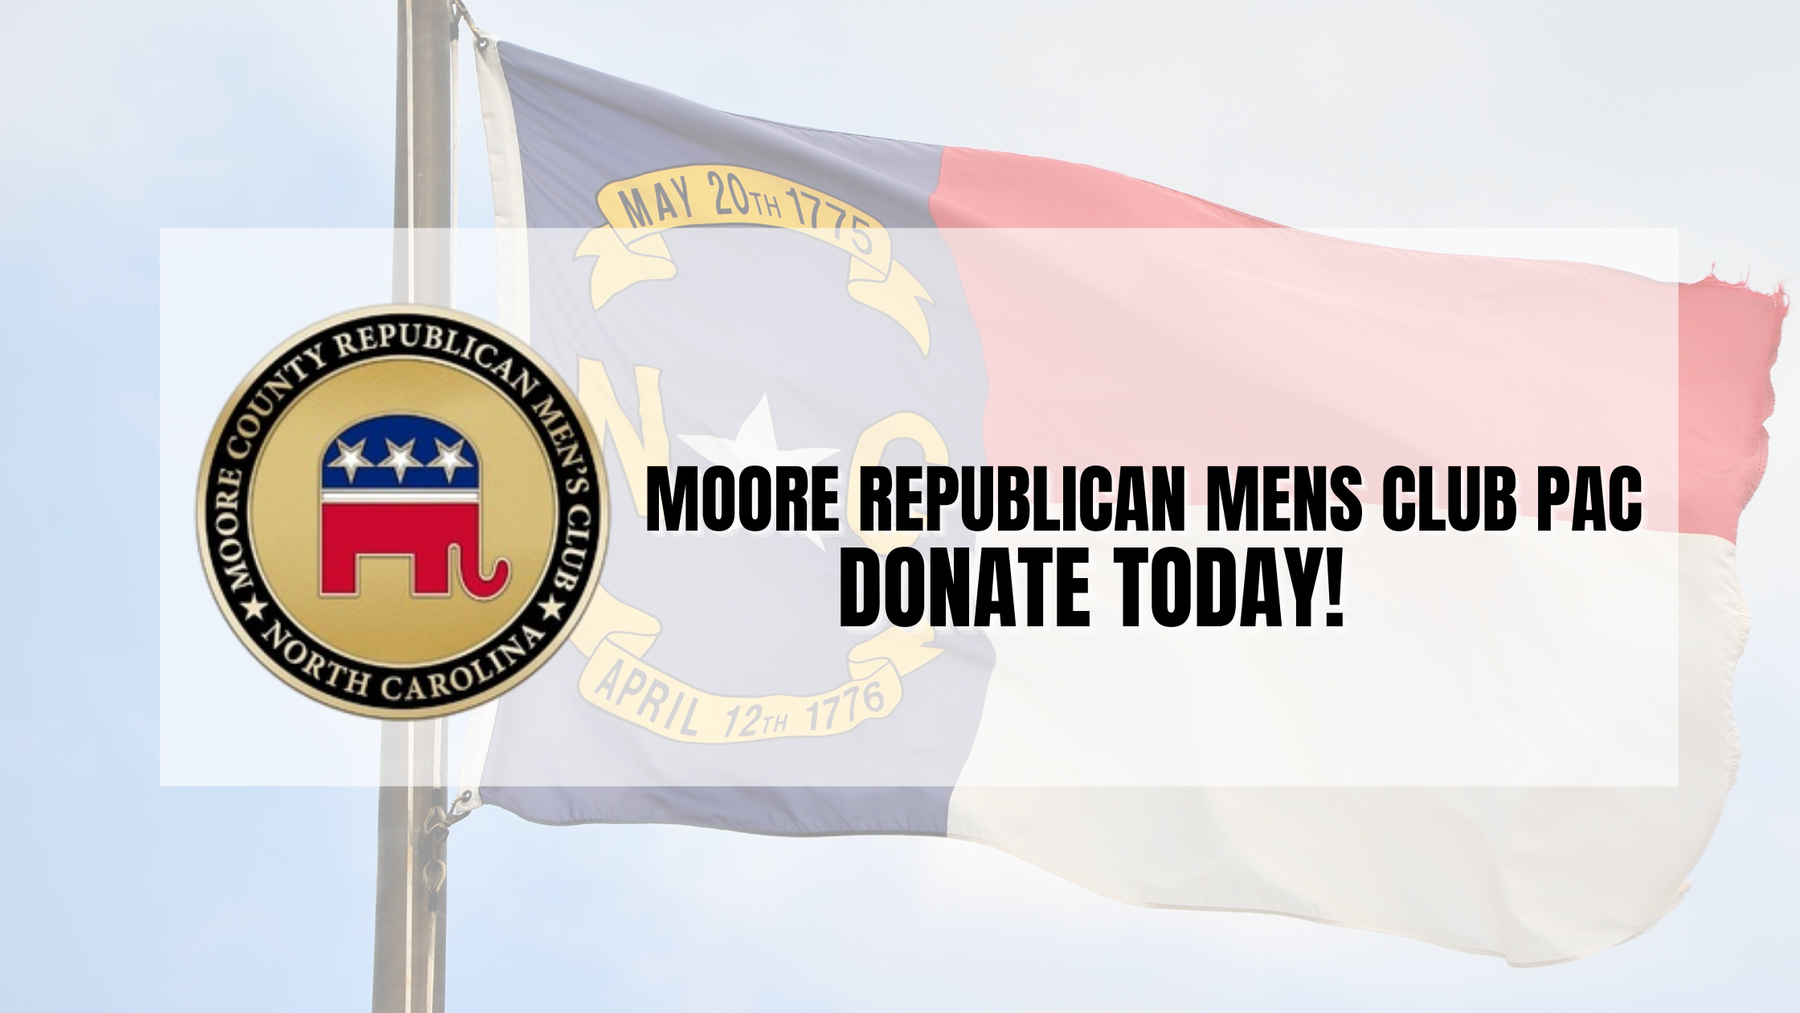 MOORE COUNTY REPUBLICAN MENS CLUB - FEDERAL PAC: General Fund